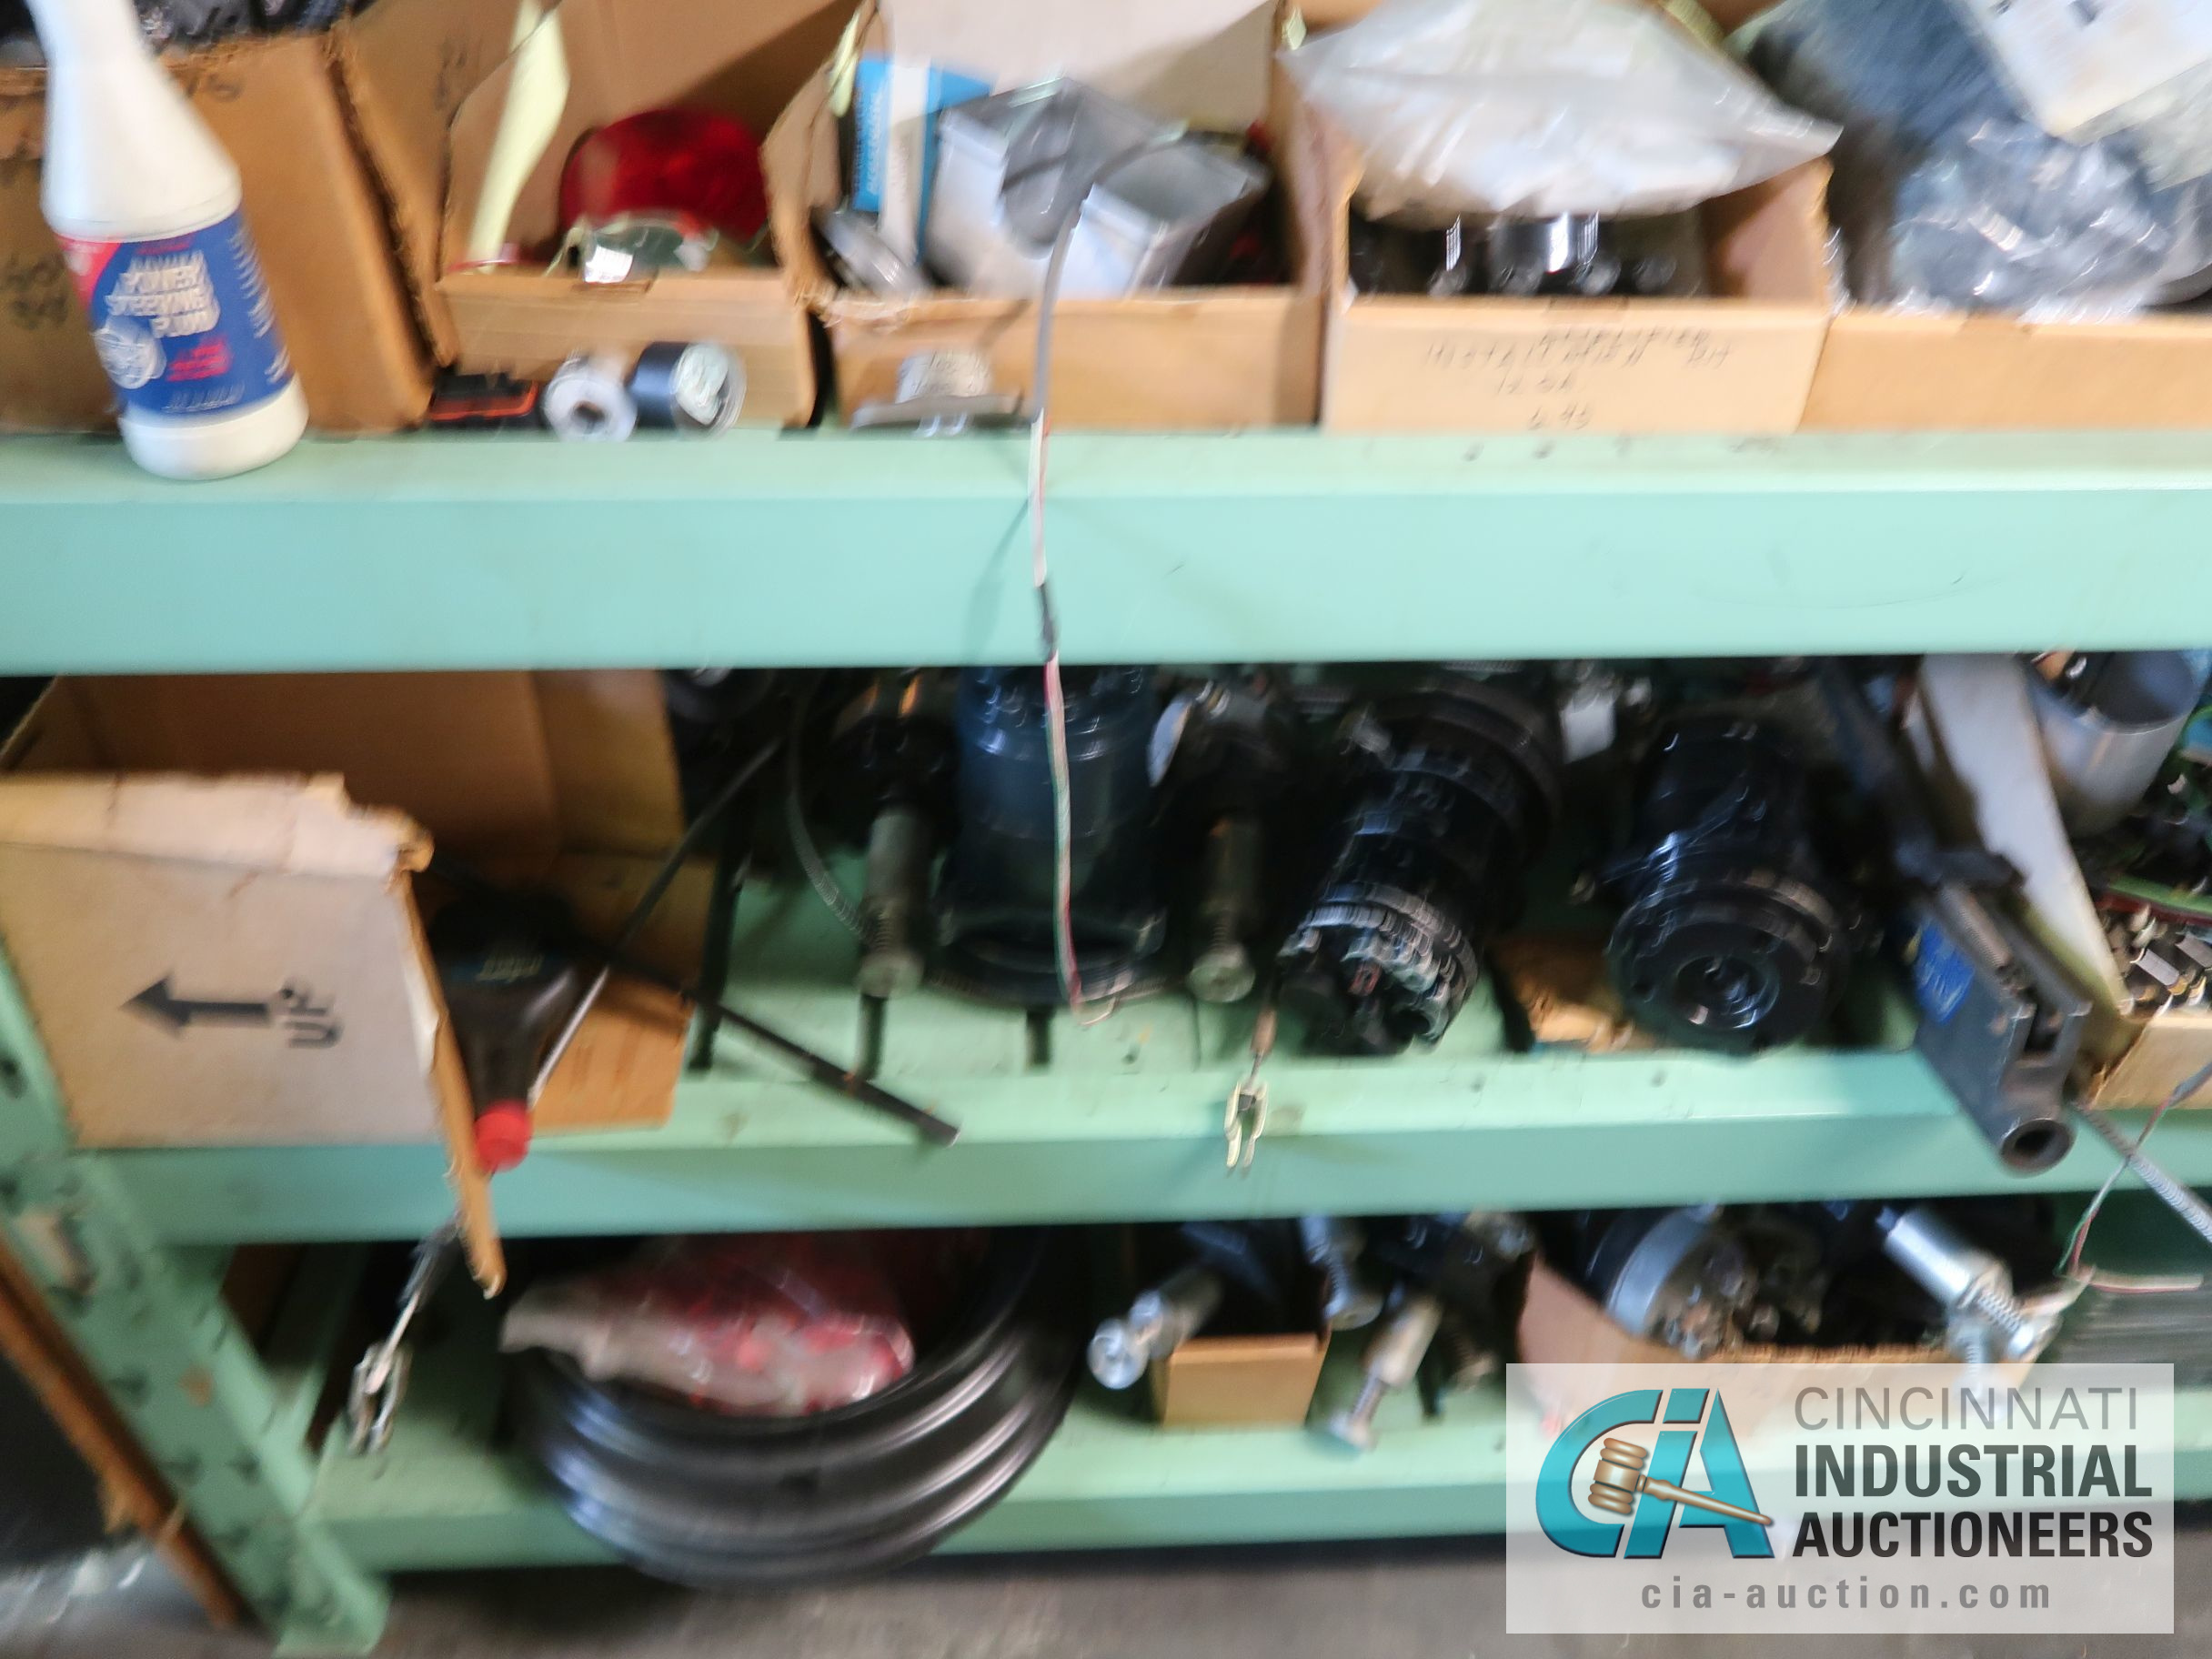 CONTENTS OF (5) RACKS INCLUDING MISCELLANEOUS AUTOMOTIVE PARTS, LIGHTS, FILTERS, ENGINE PARTS, RIMS, - Image 20 of 29